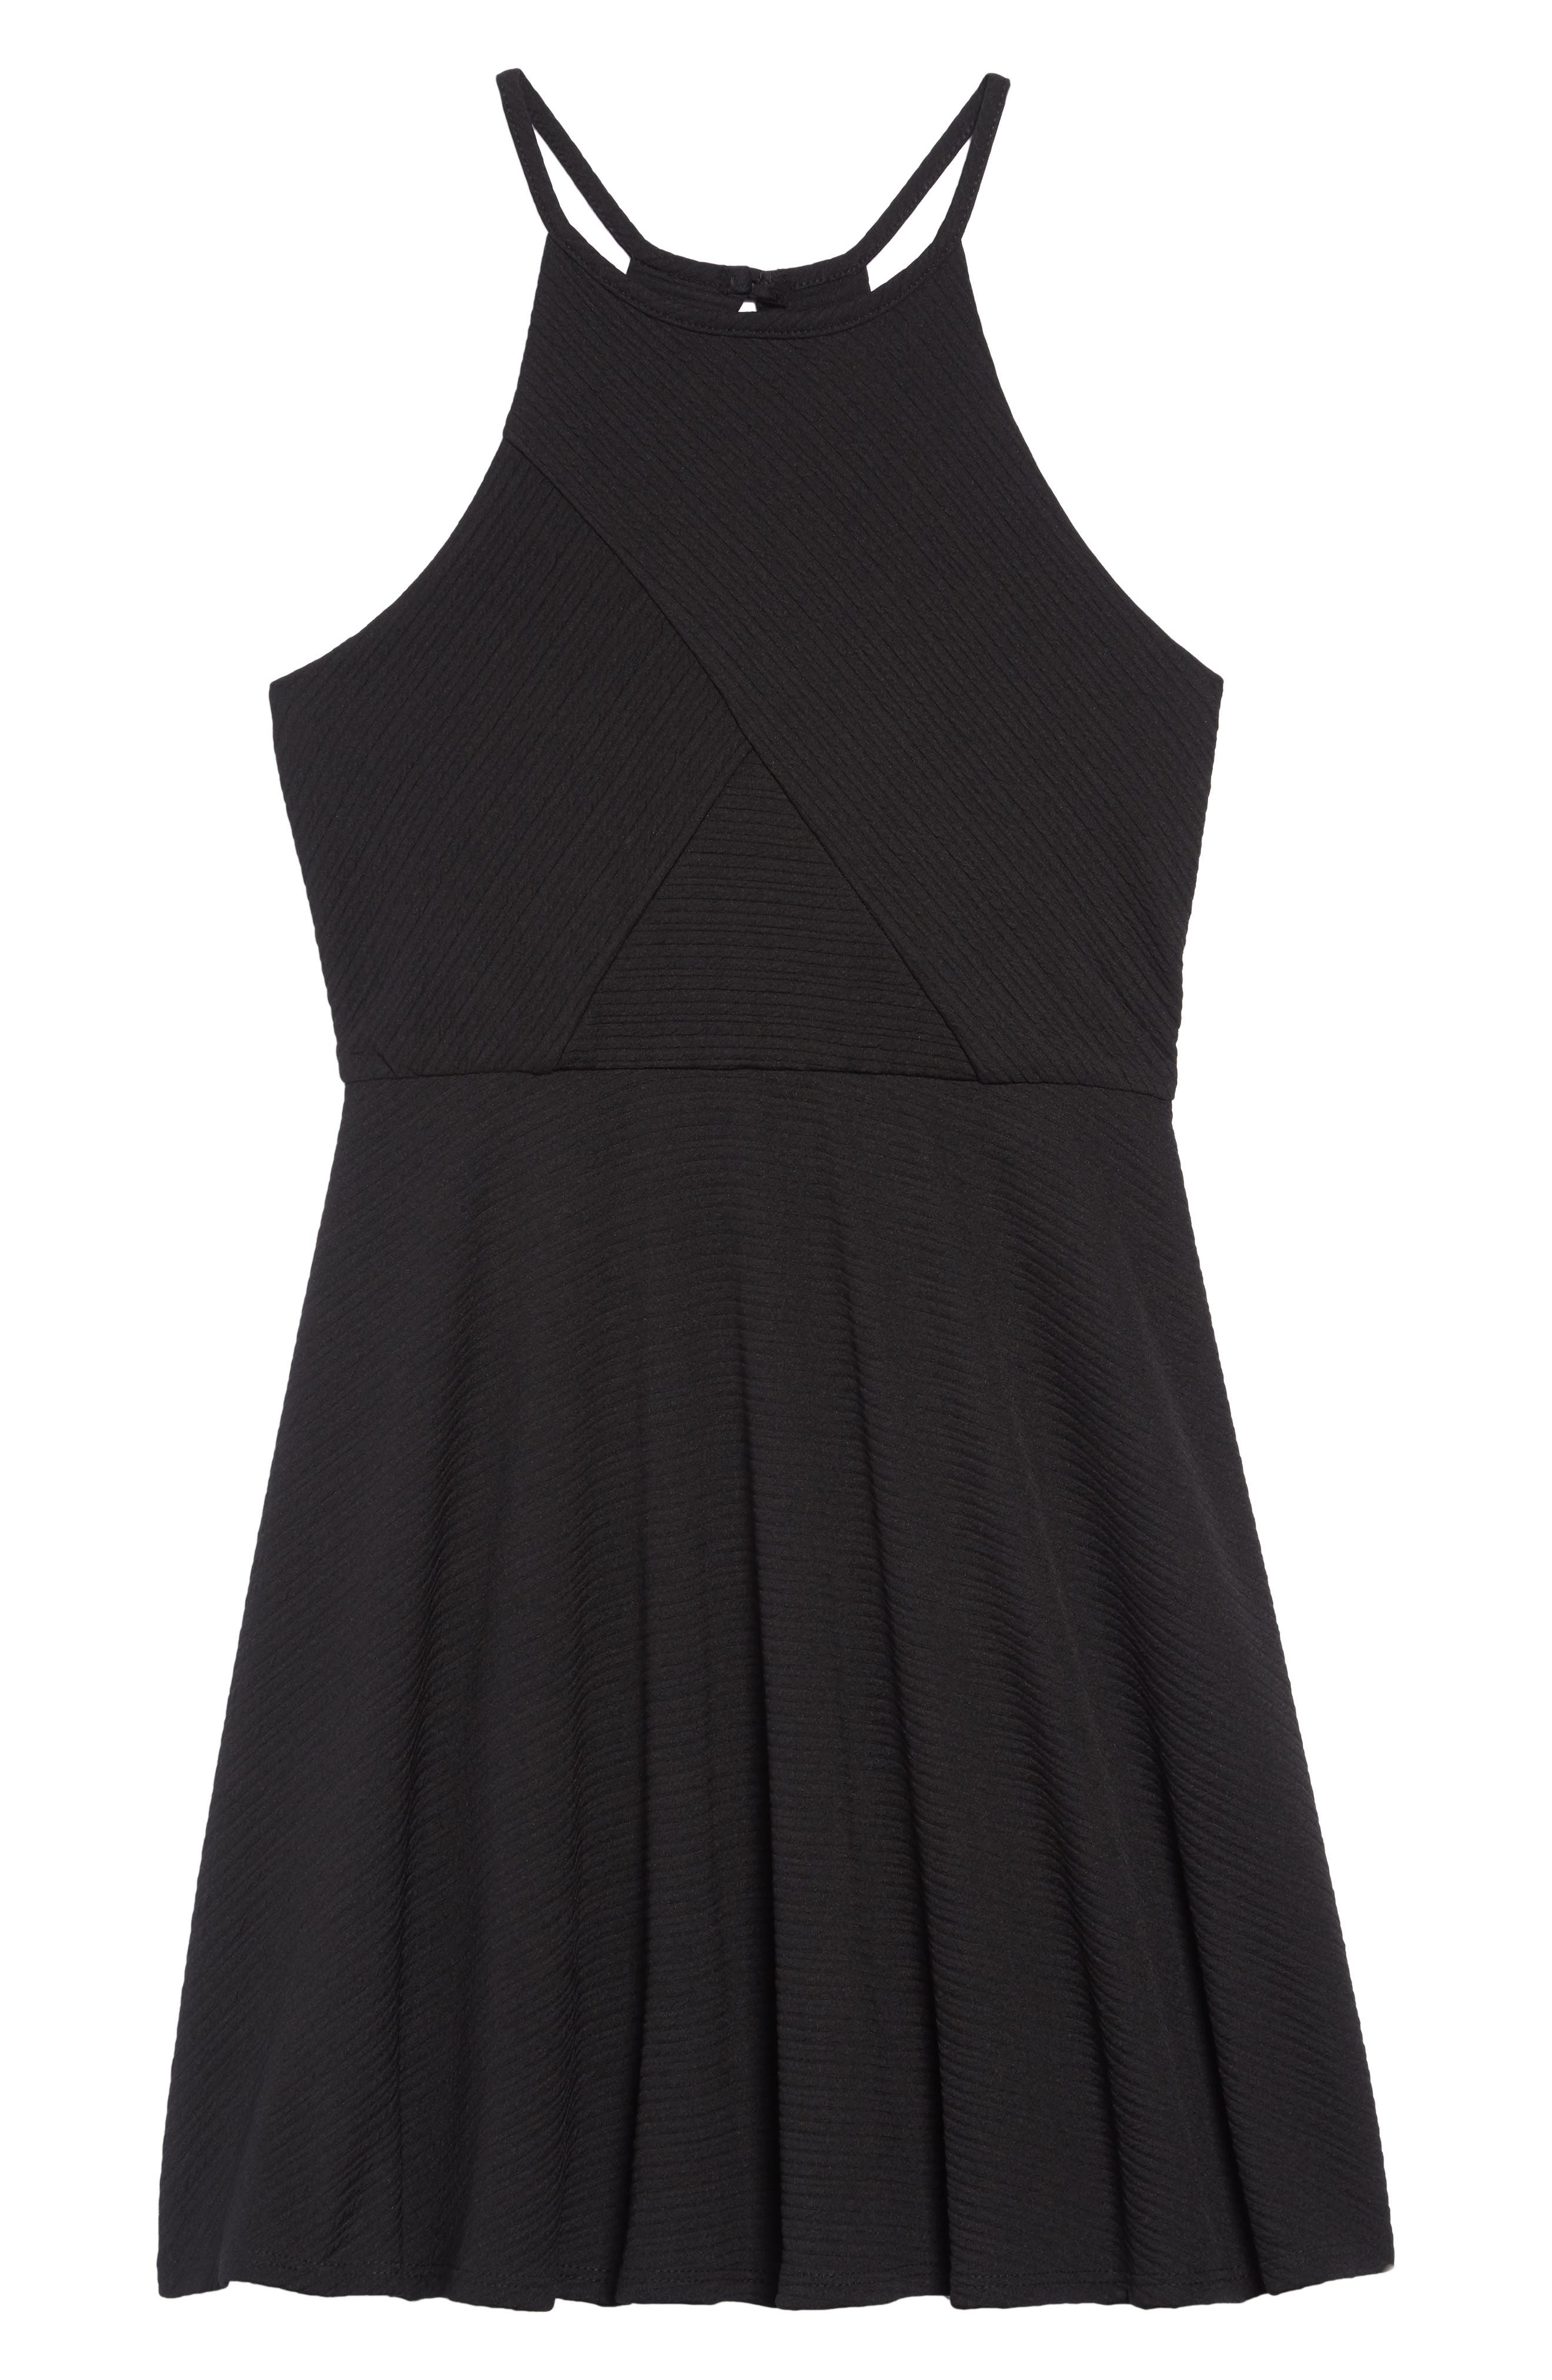 Textured Skater Dress,                             Main thumbnail 1, color,                             001